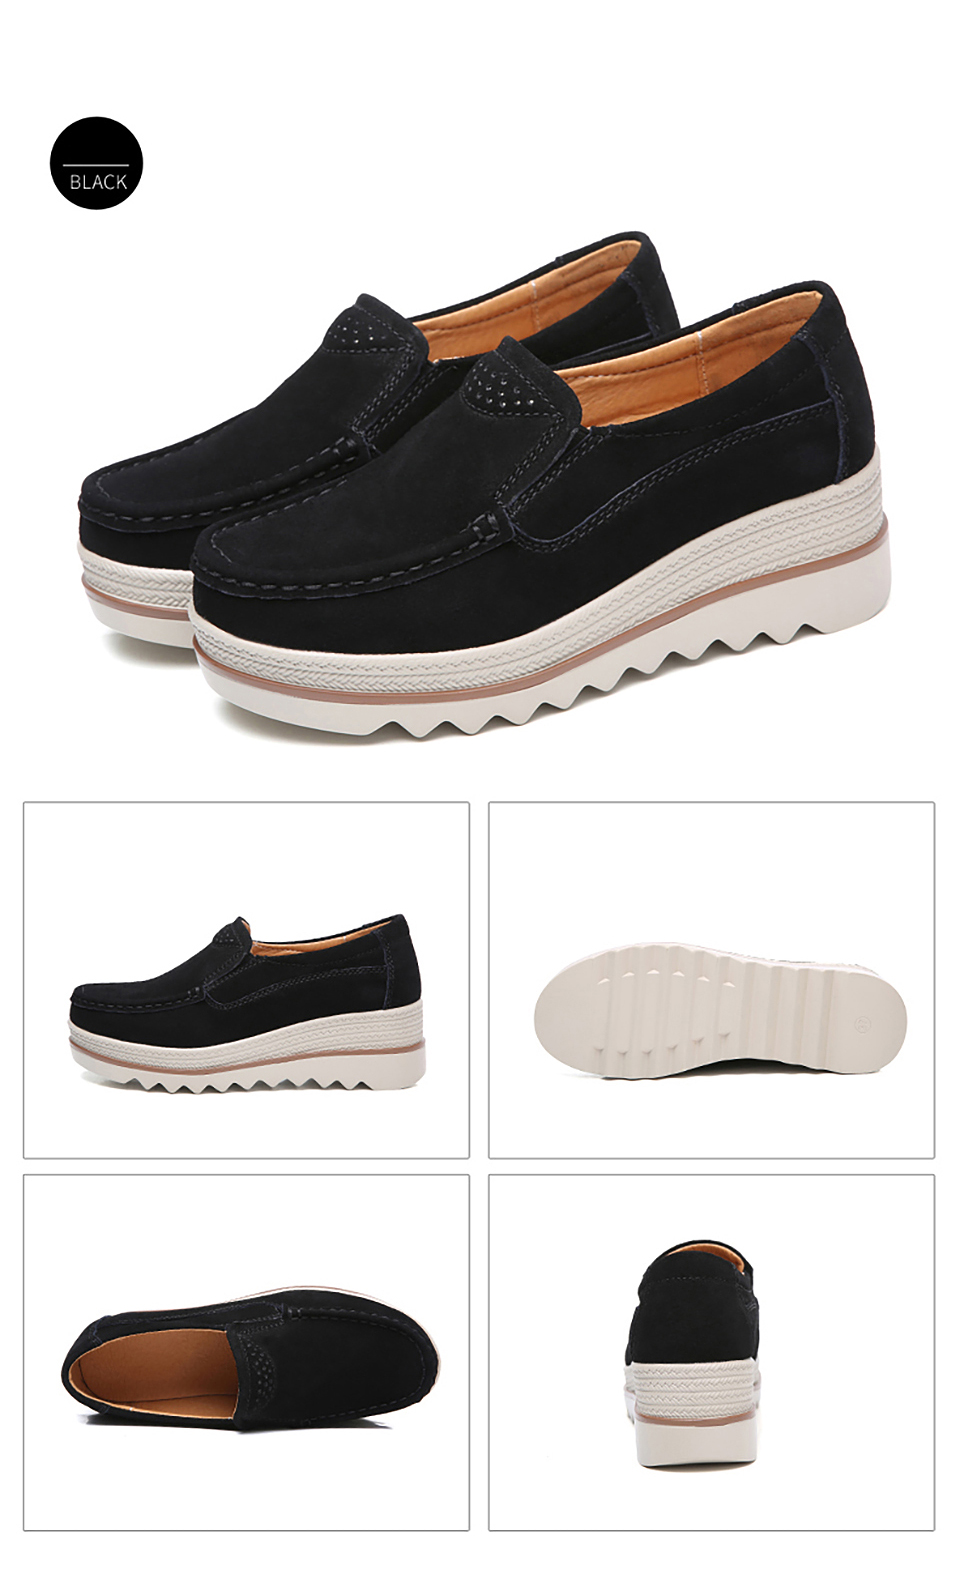 HTB1HMpSOkvoK1RjSZFNq6AxMVXaS 2019 Spring Women Flats Shoes Platform Sneakers Slip On Flats Leather Suede Ladies Loafers Moccasins Casual Shoes Women Creepers